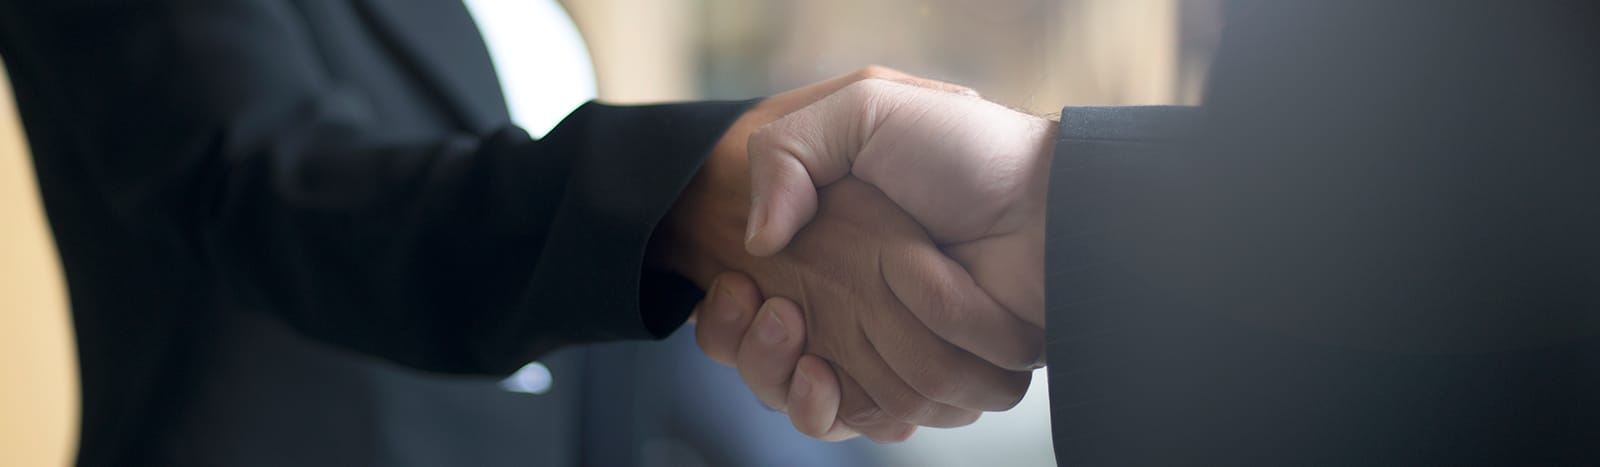 Two persons in business suits shaking hands